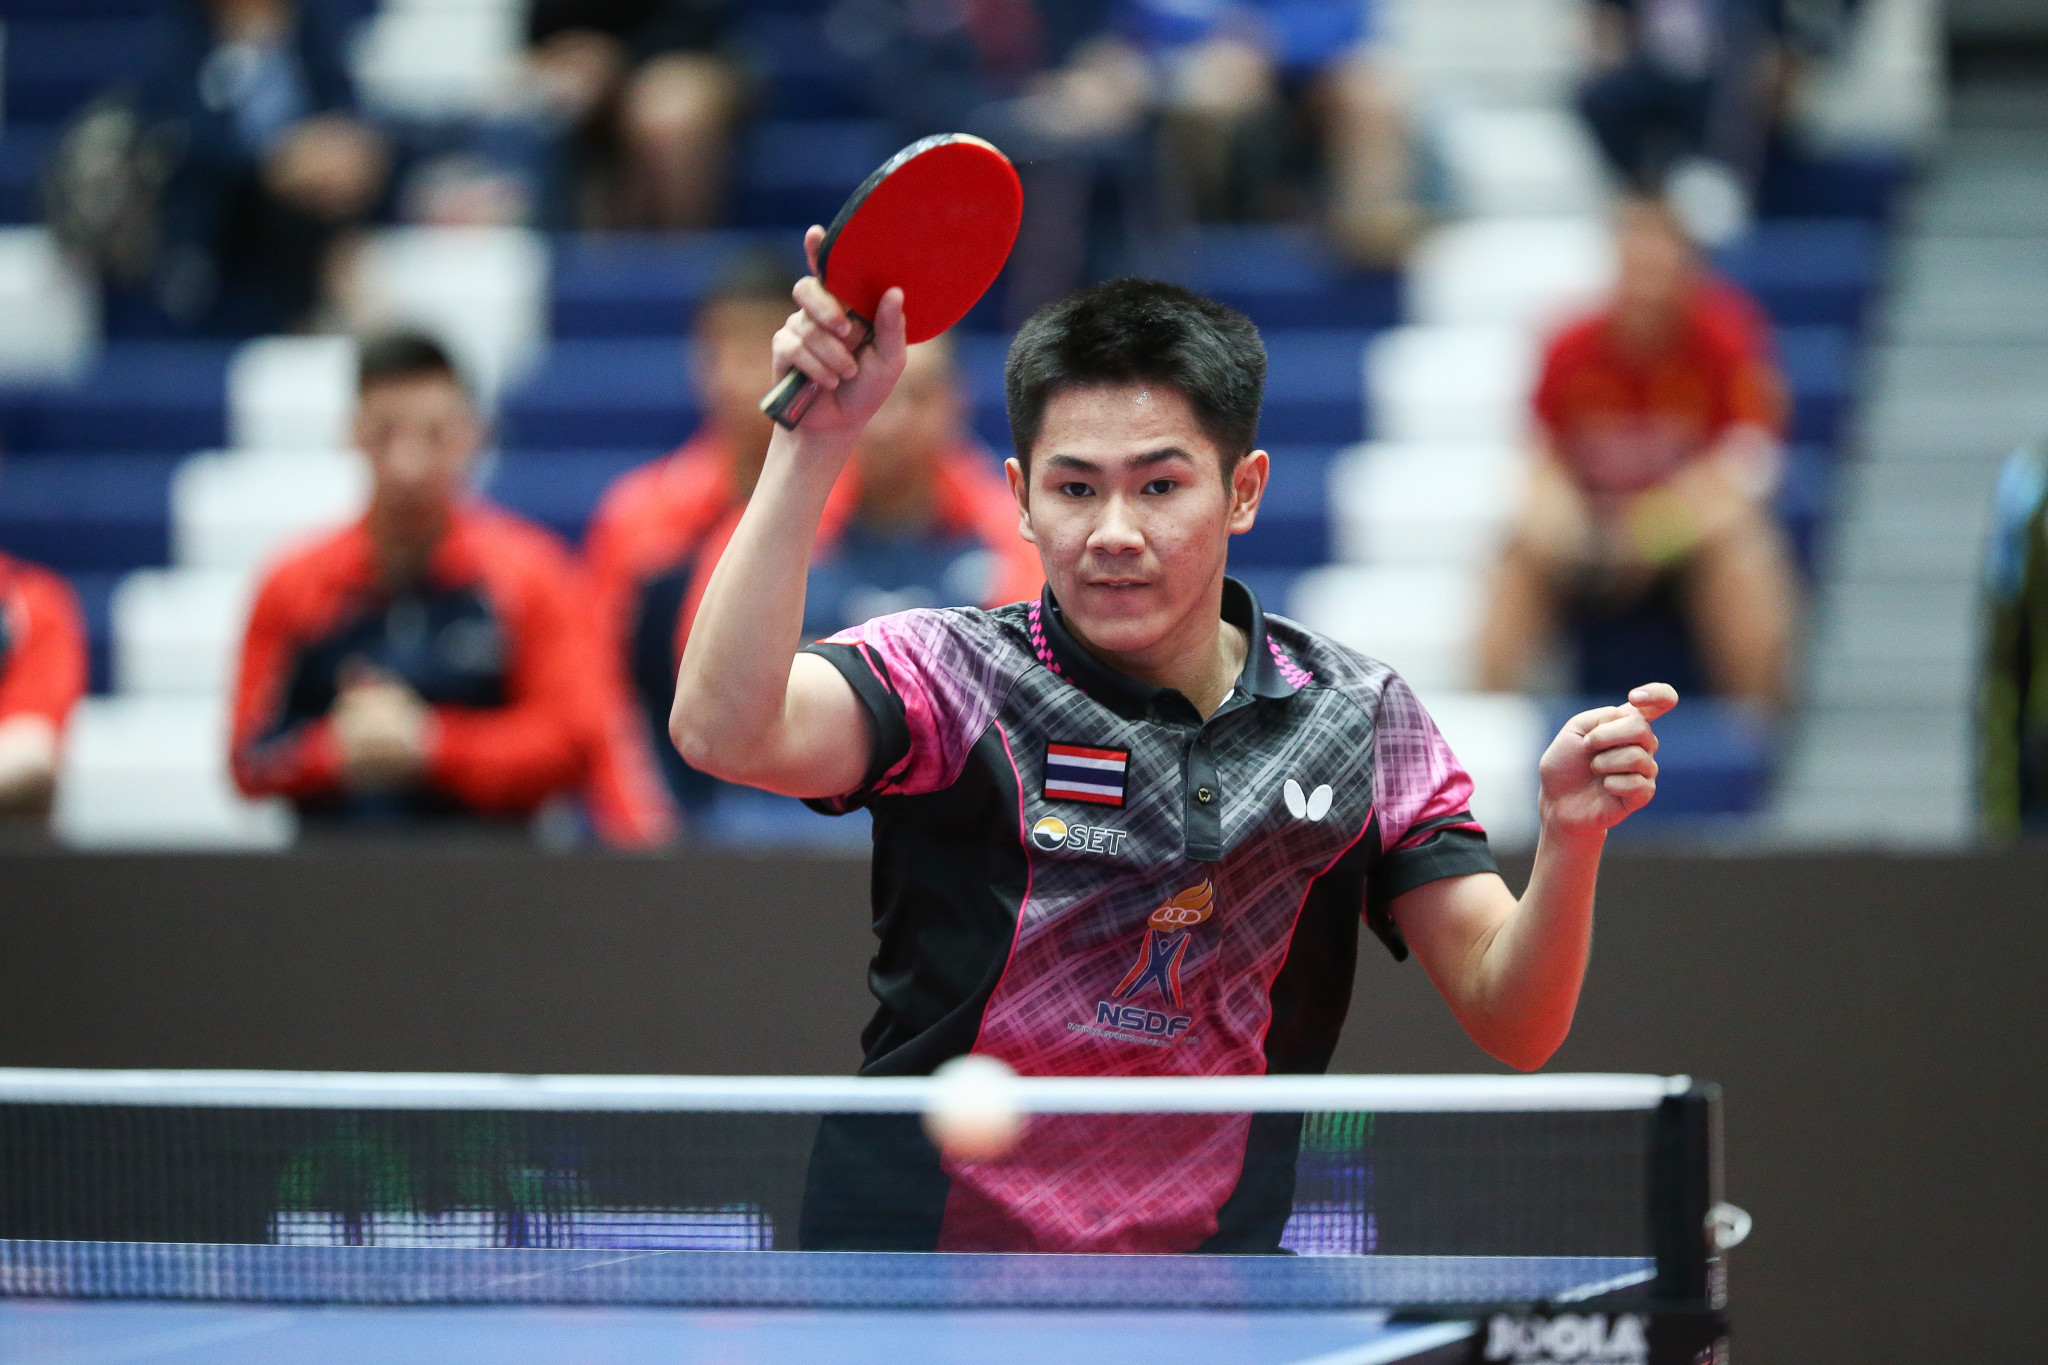 Hosts Thailand struggle on opening day of ITTF World Junior Table Tennis Championships